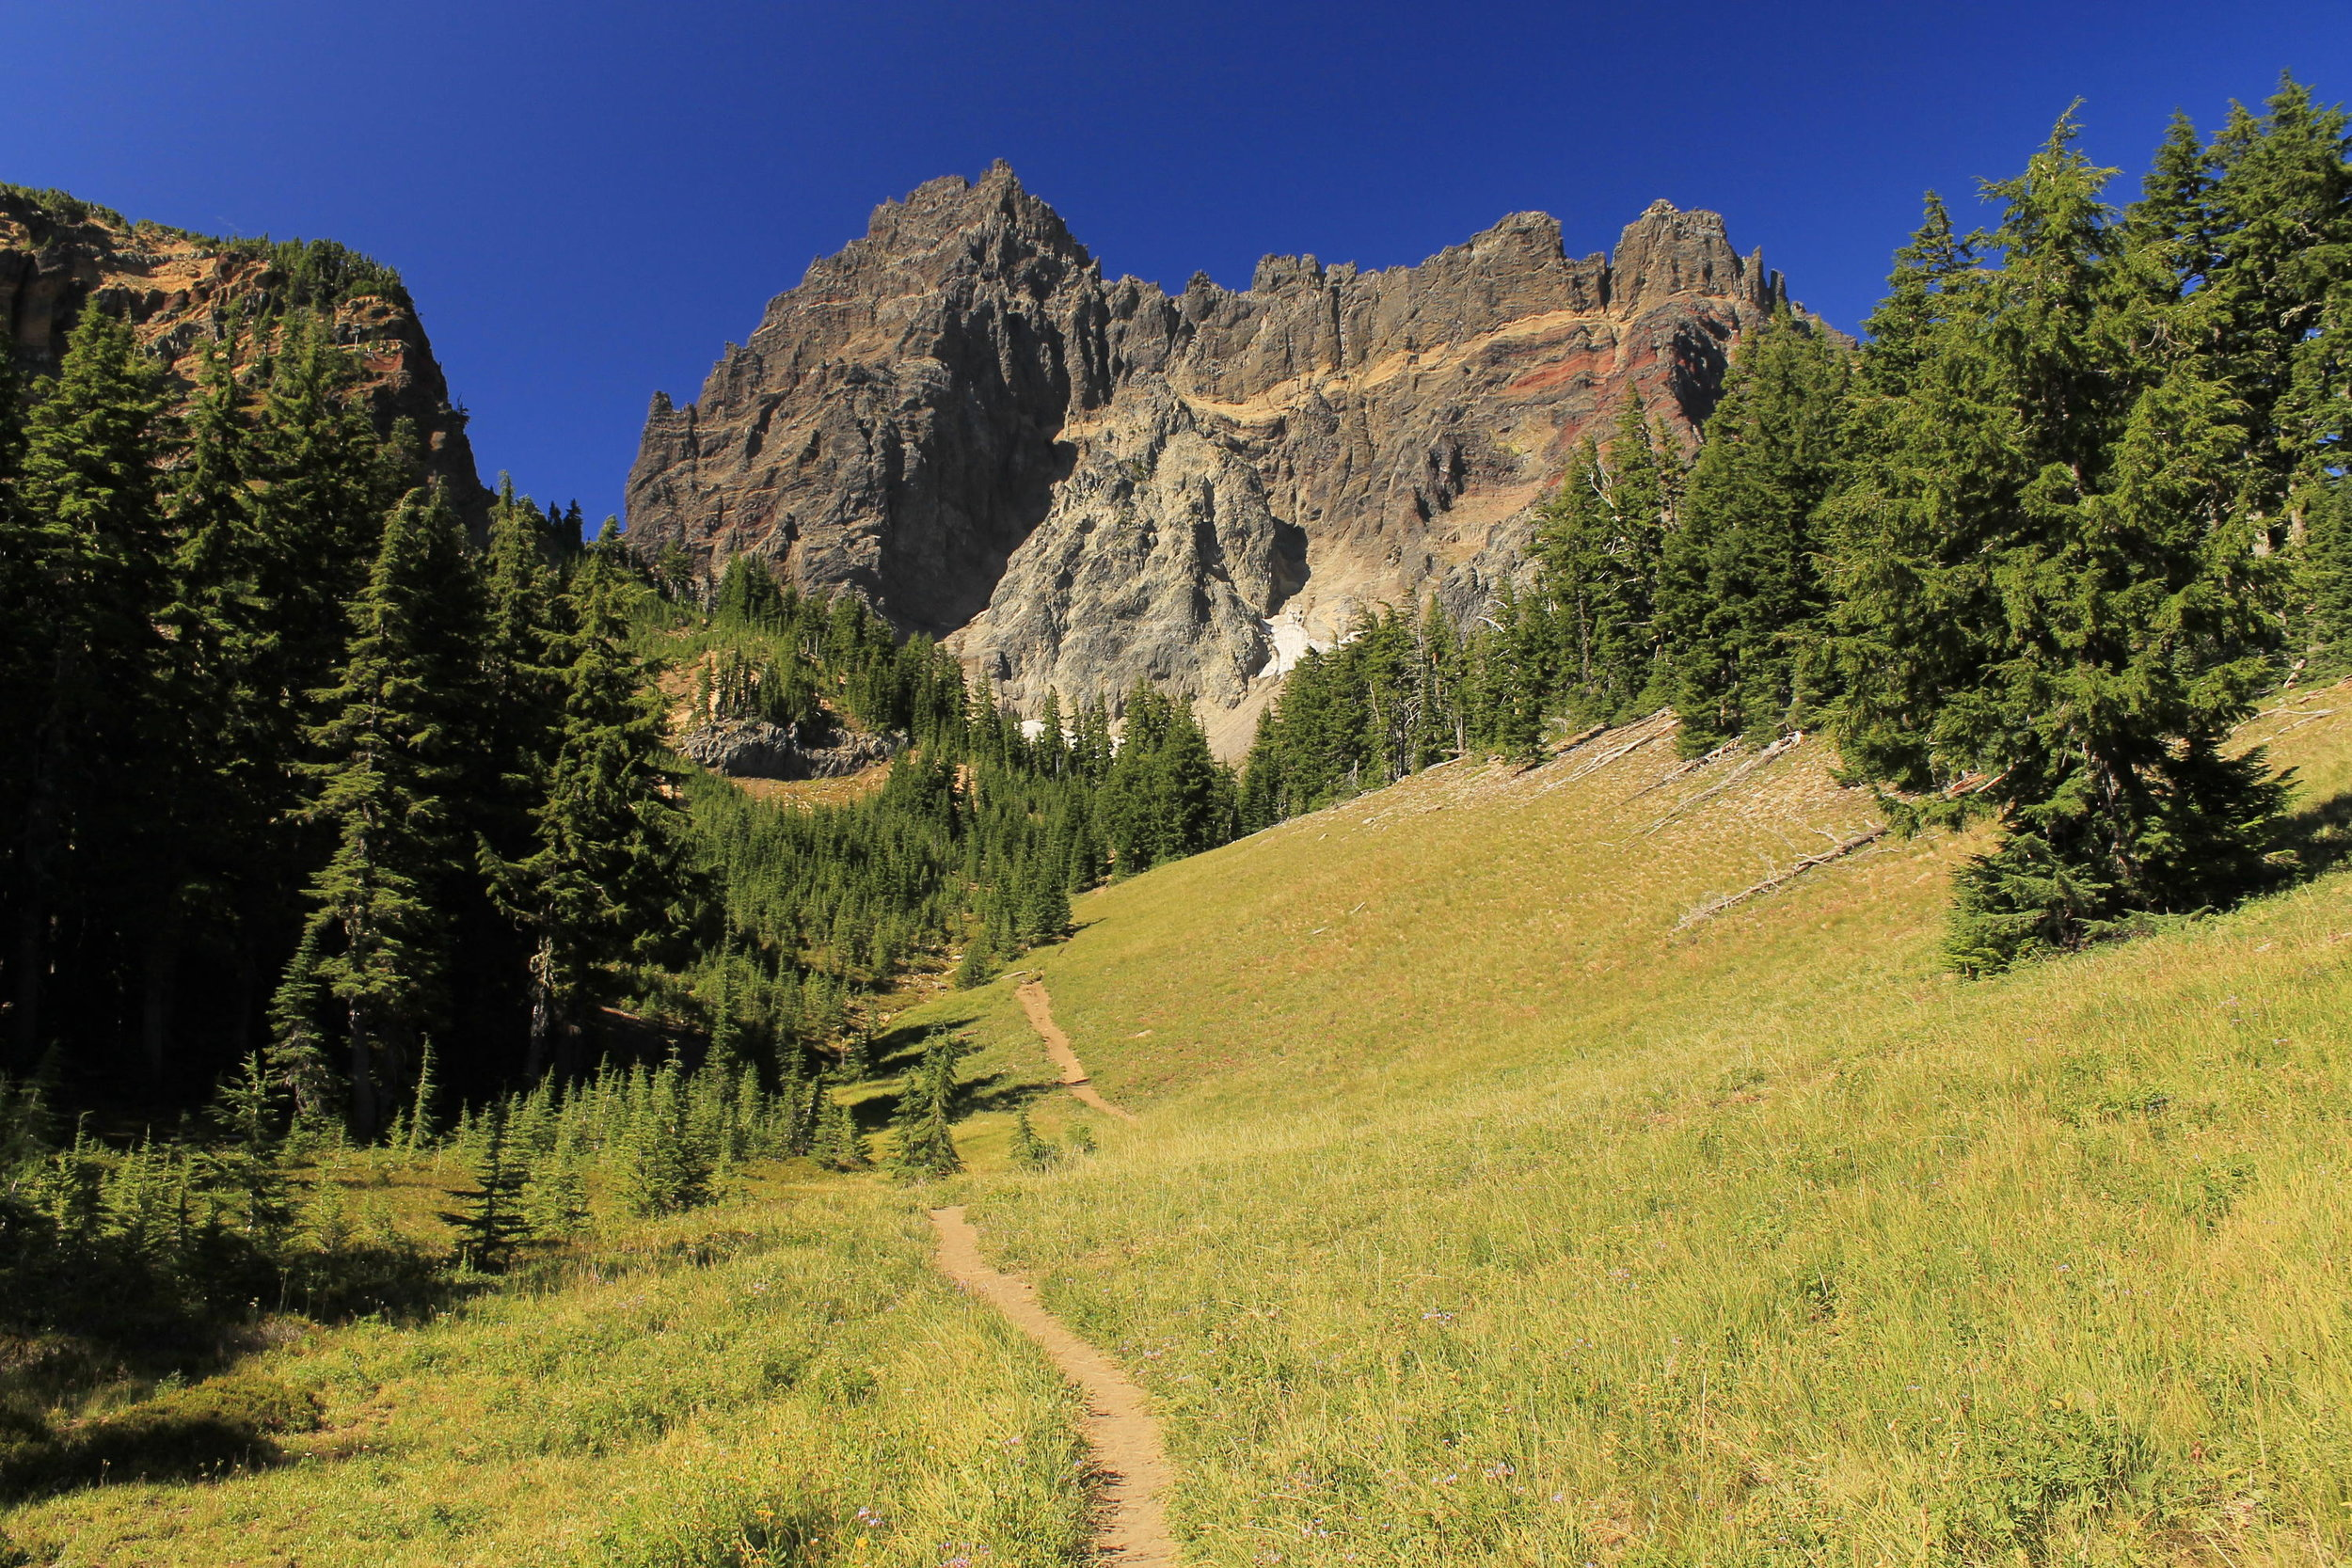 Hiking into Canyon Creek Meadows.